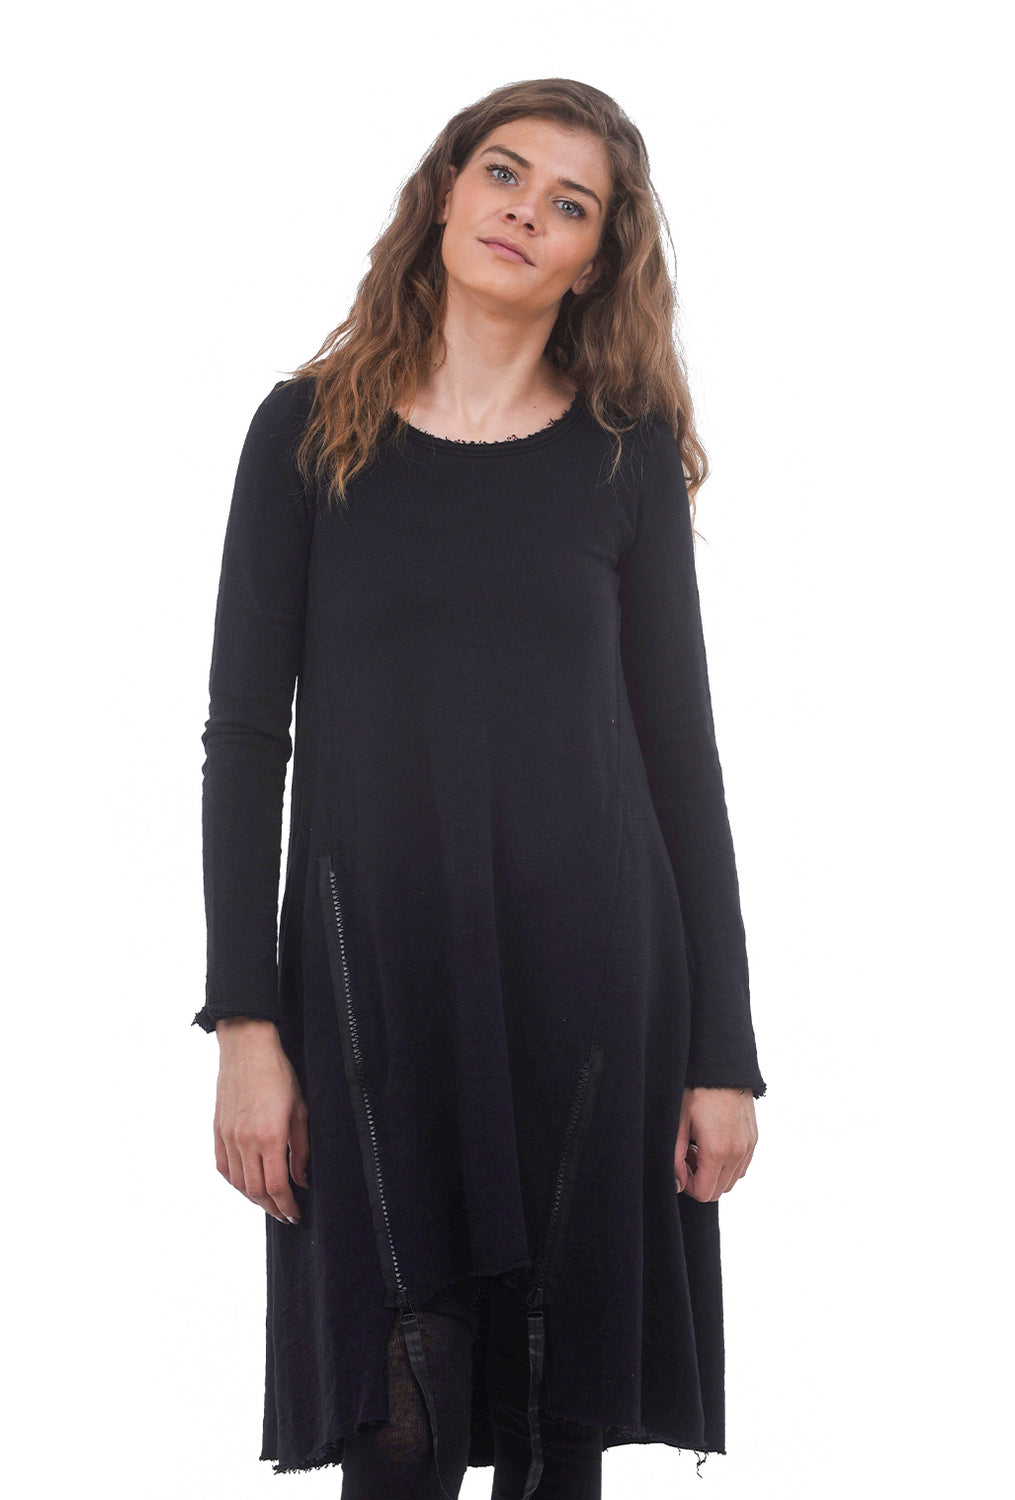 Studio B3 Formosa French Terry Dress, Black